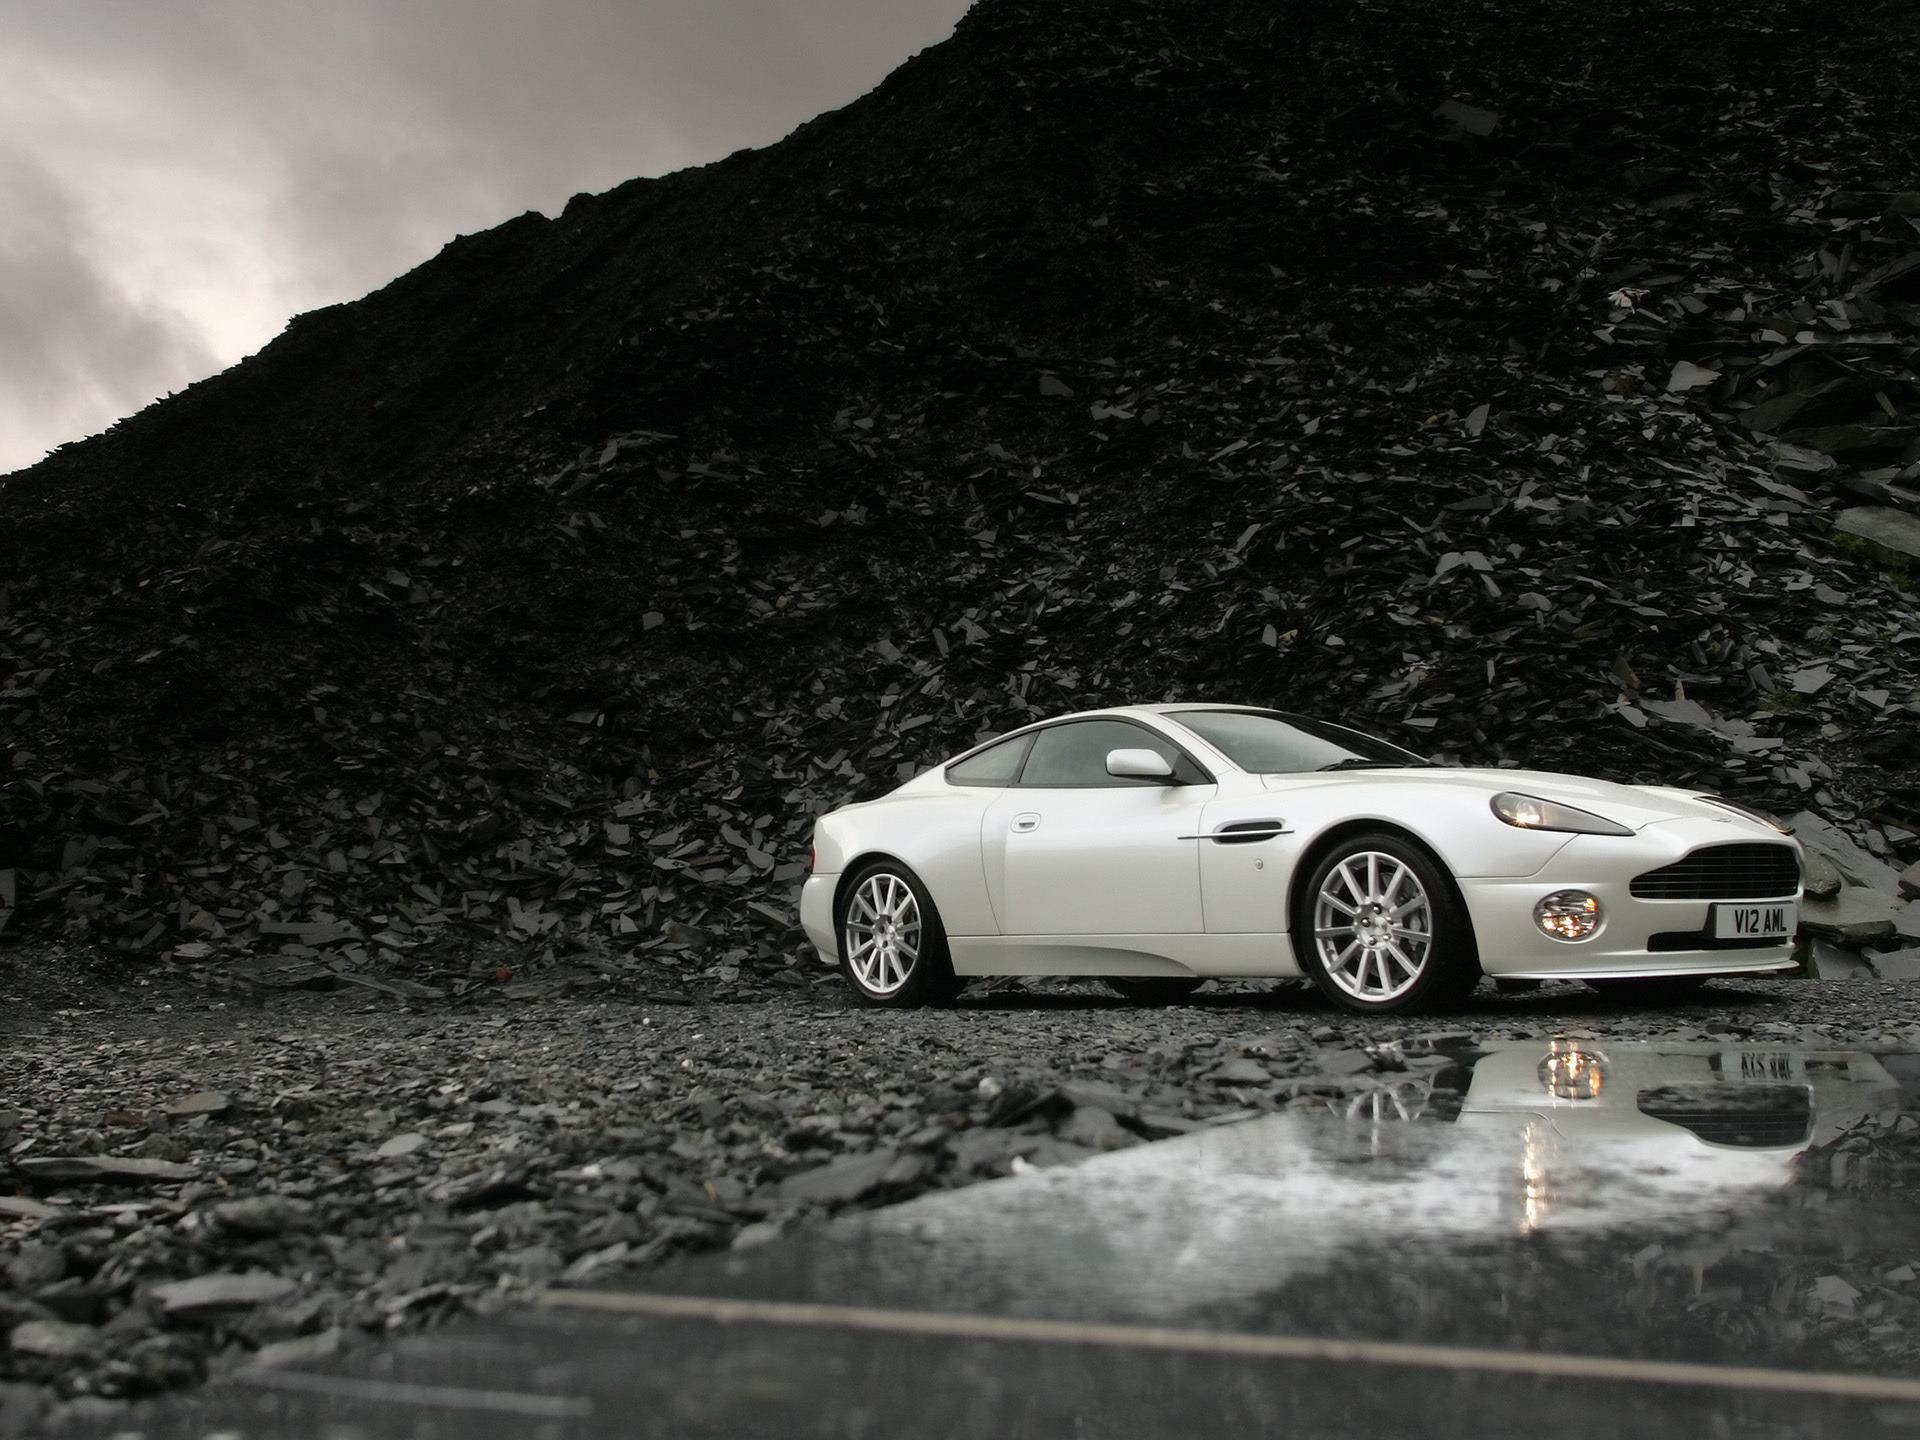 Aston Martin Vanquish Wallpapers Pictures Images 1920x1440